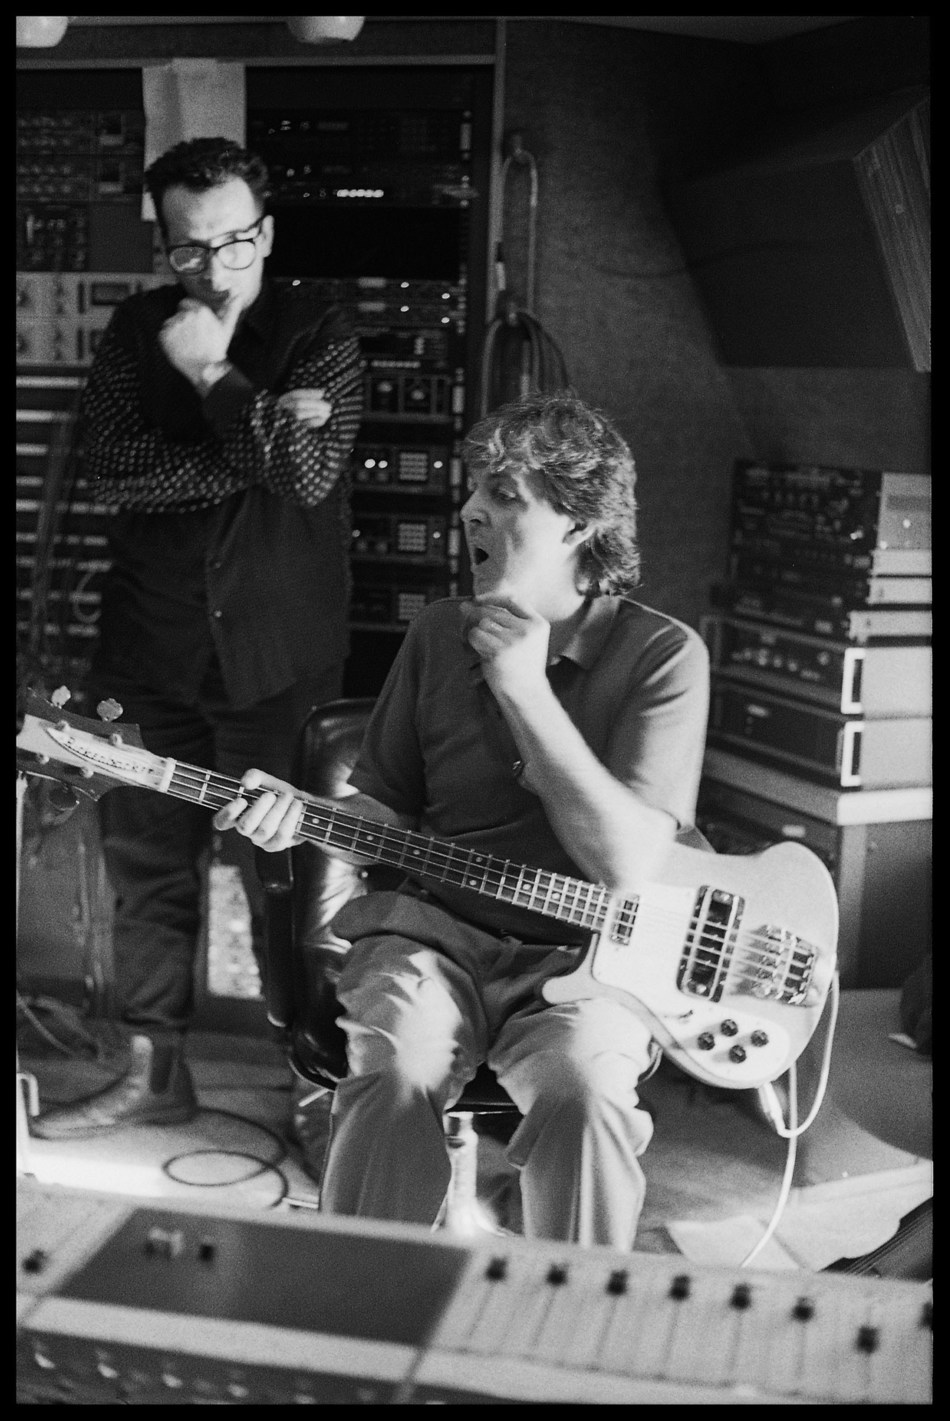 Paul McCartney and Elvis Costello, 'Flowers In The Dirt' recording sessions, 1988. Photo credit: 1988 (C) Paul McCartney / Photo by Linda McCartney.